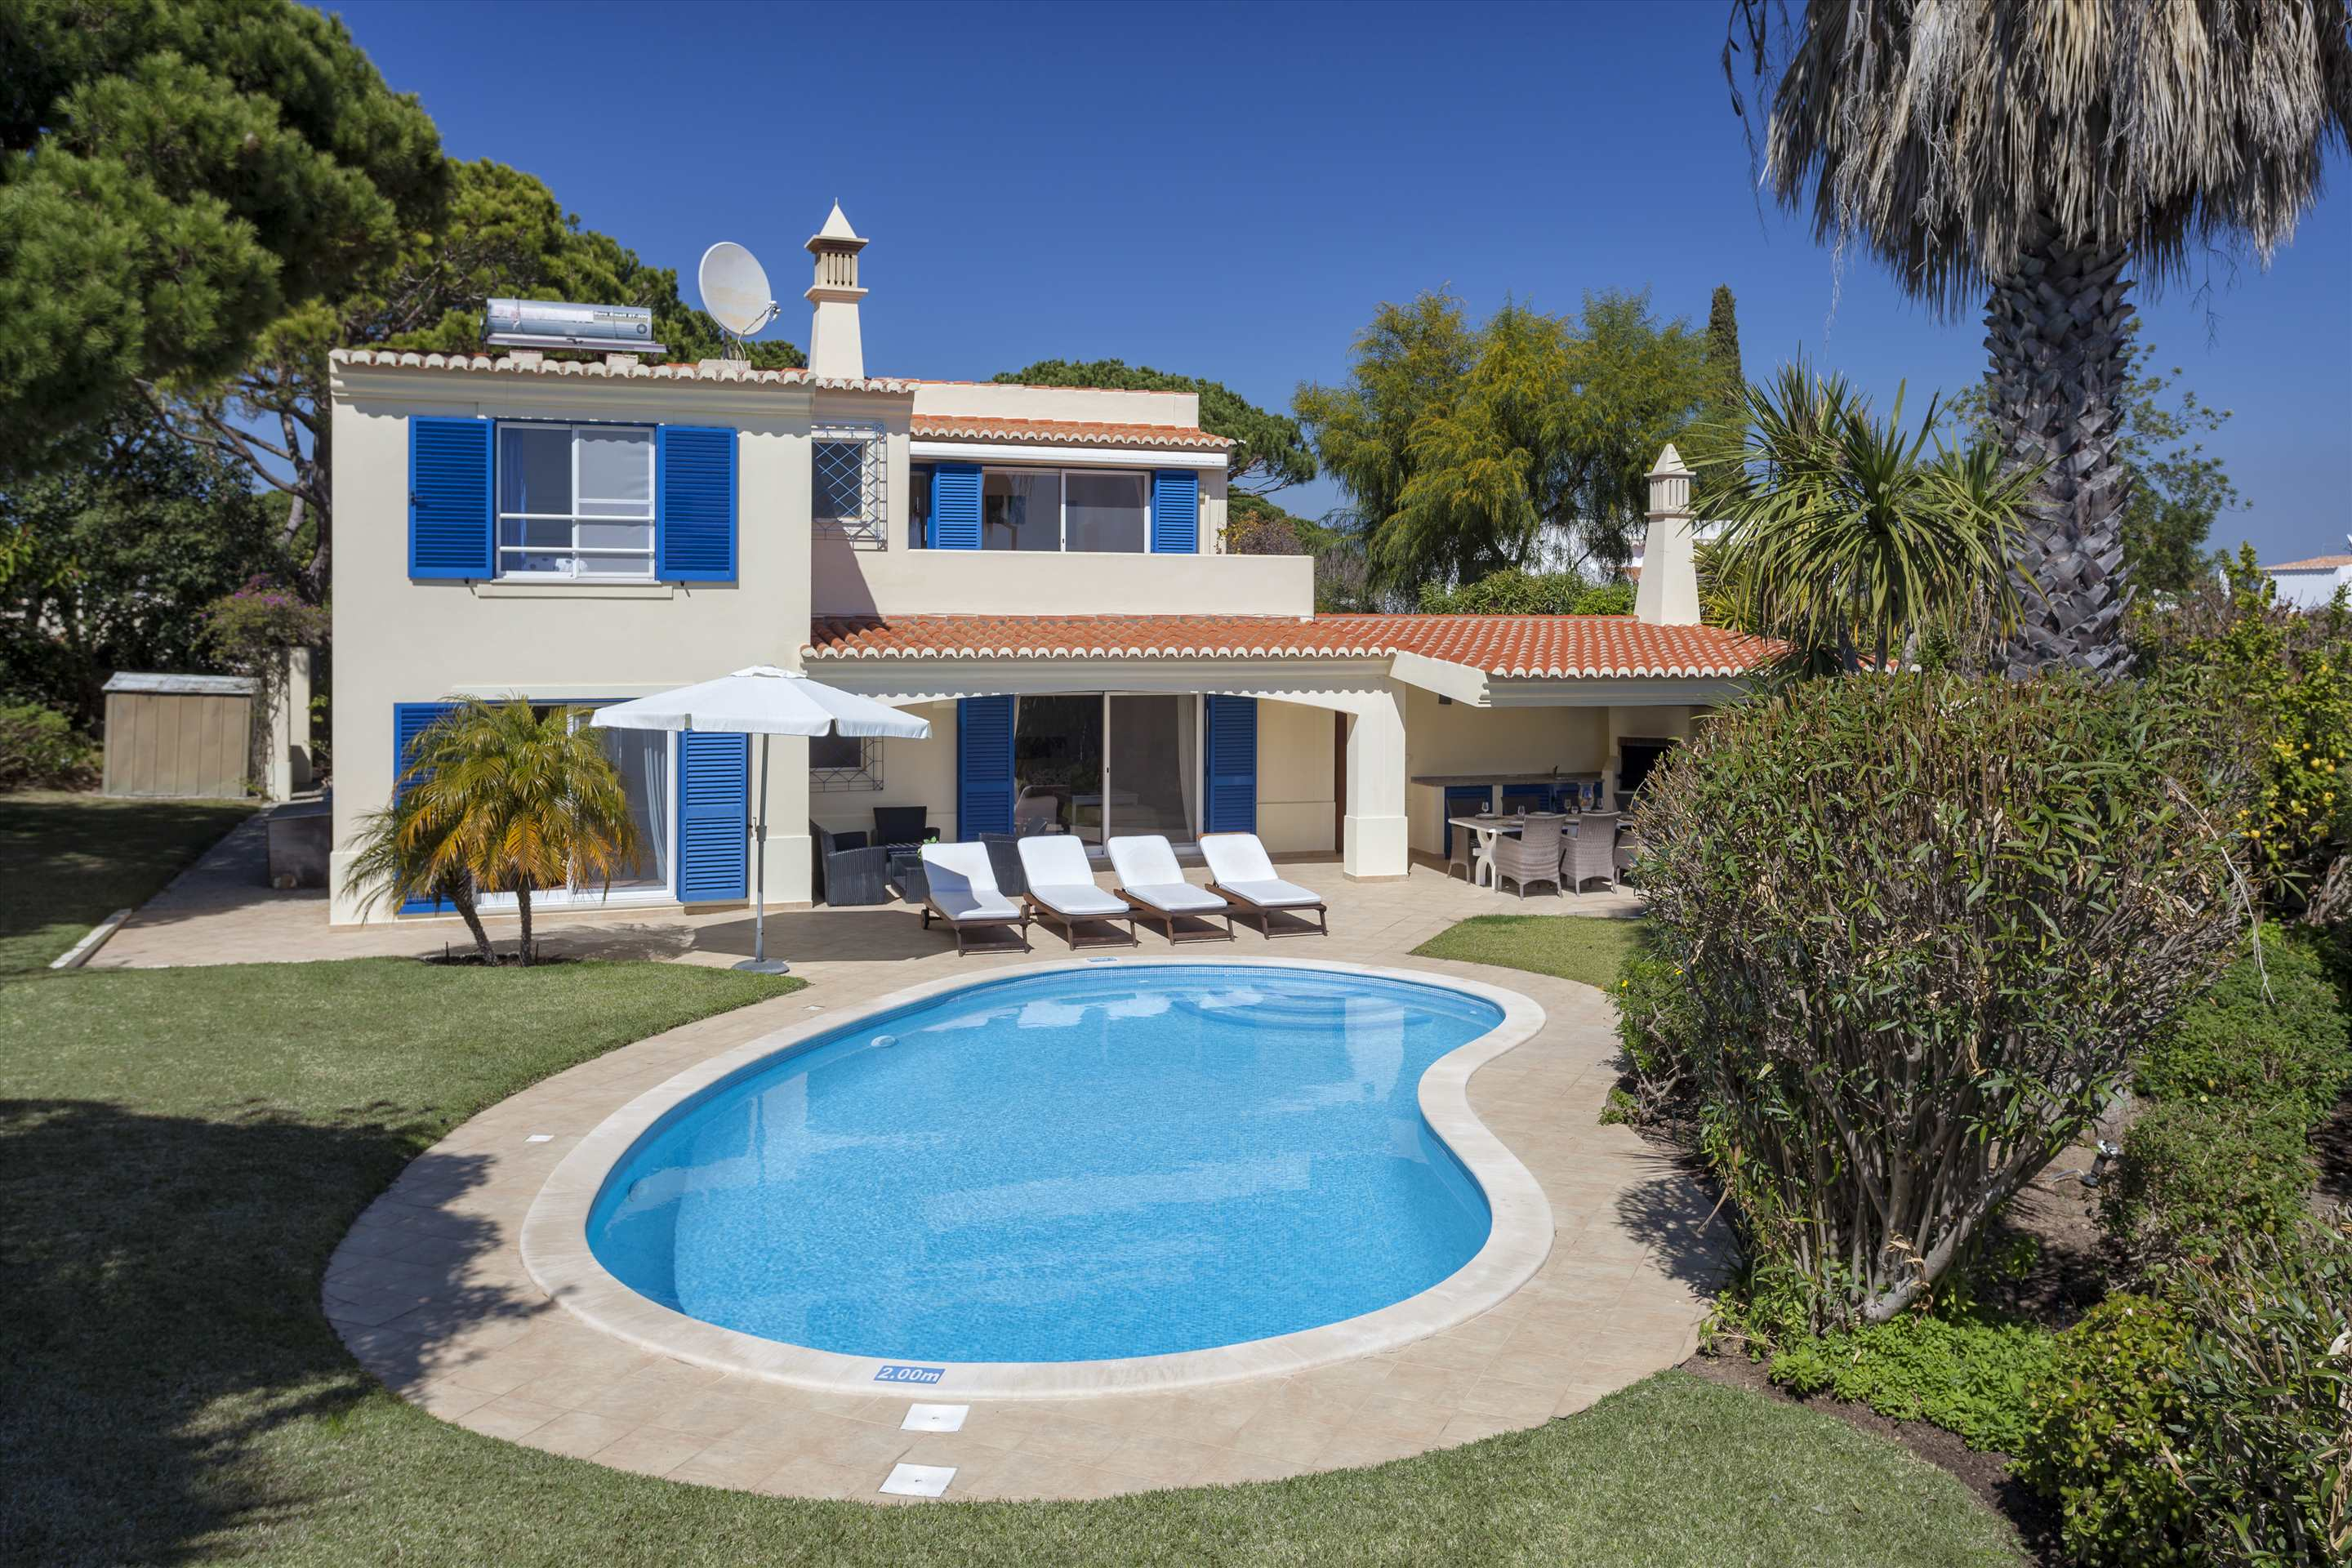 Villa Longa, 4 bedroom villa in Vale do Lobo, Algarve Photo #6